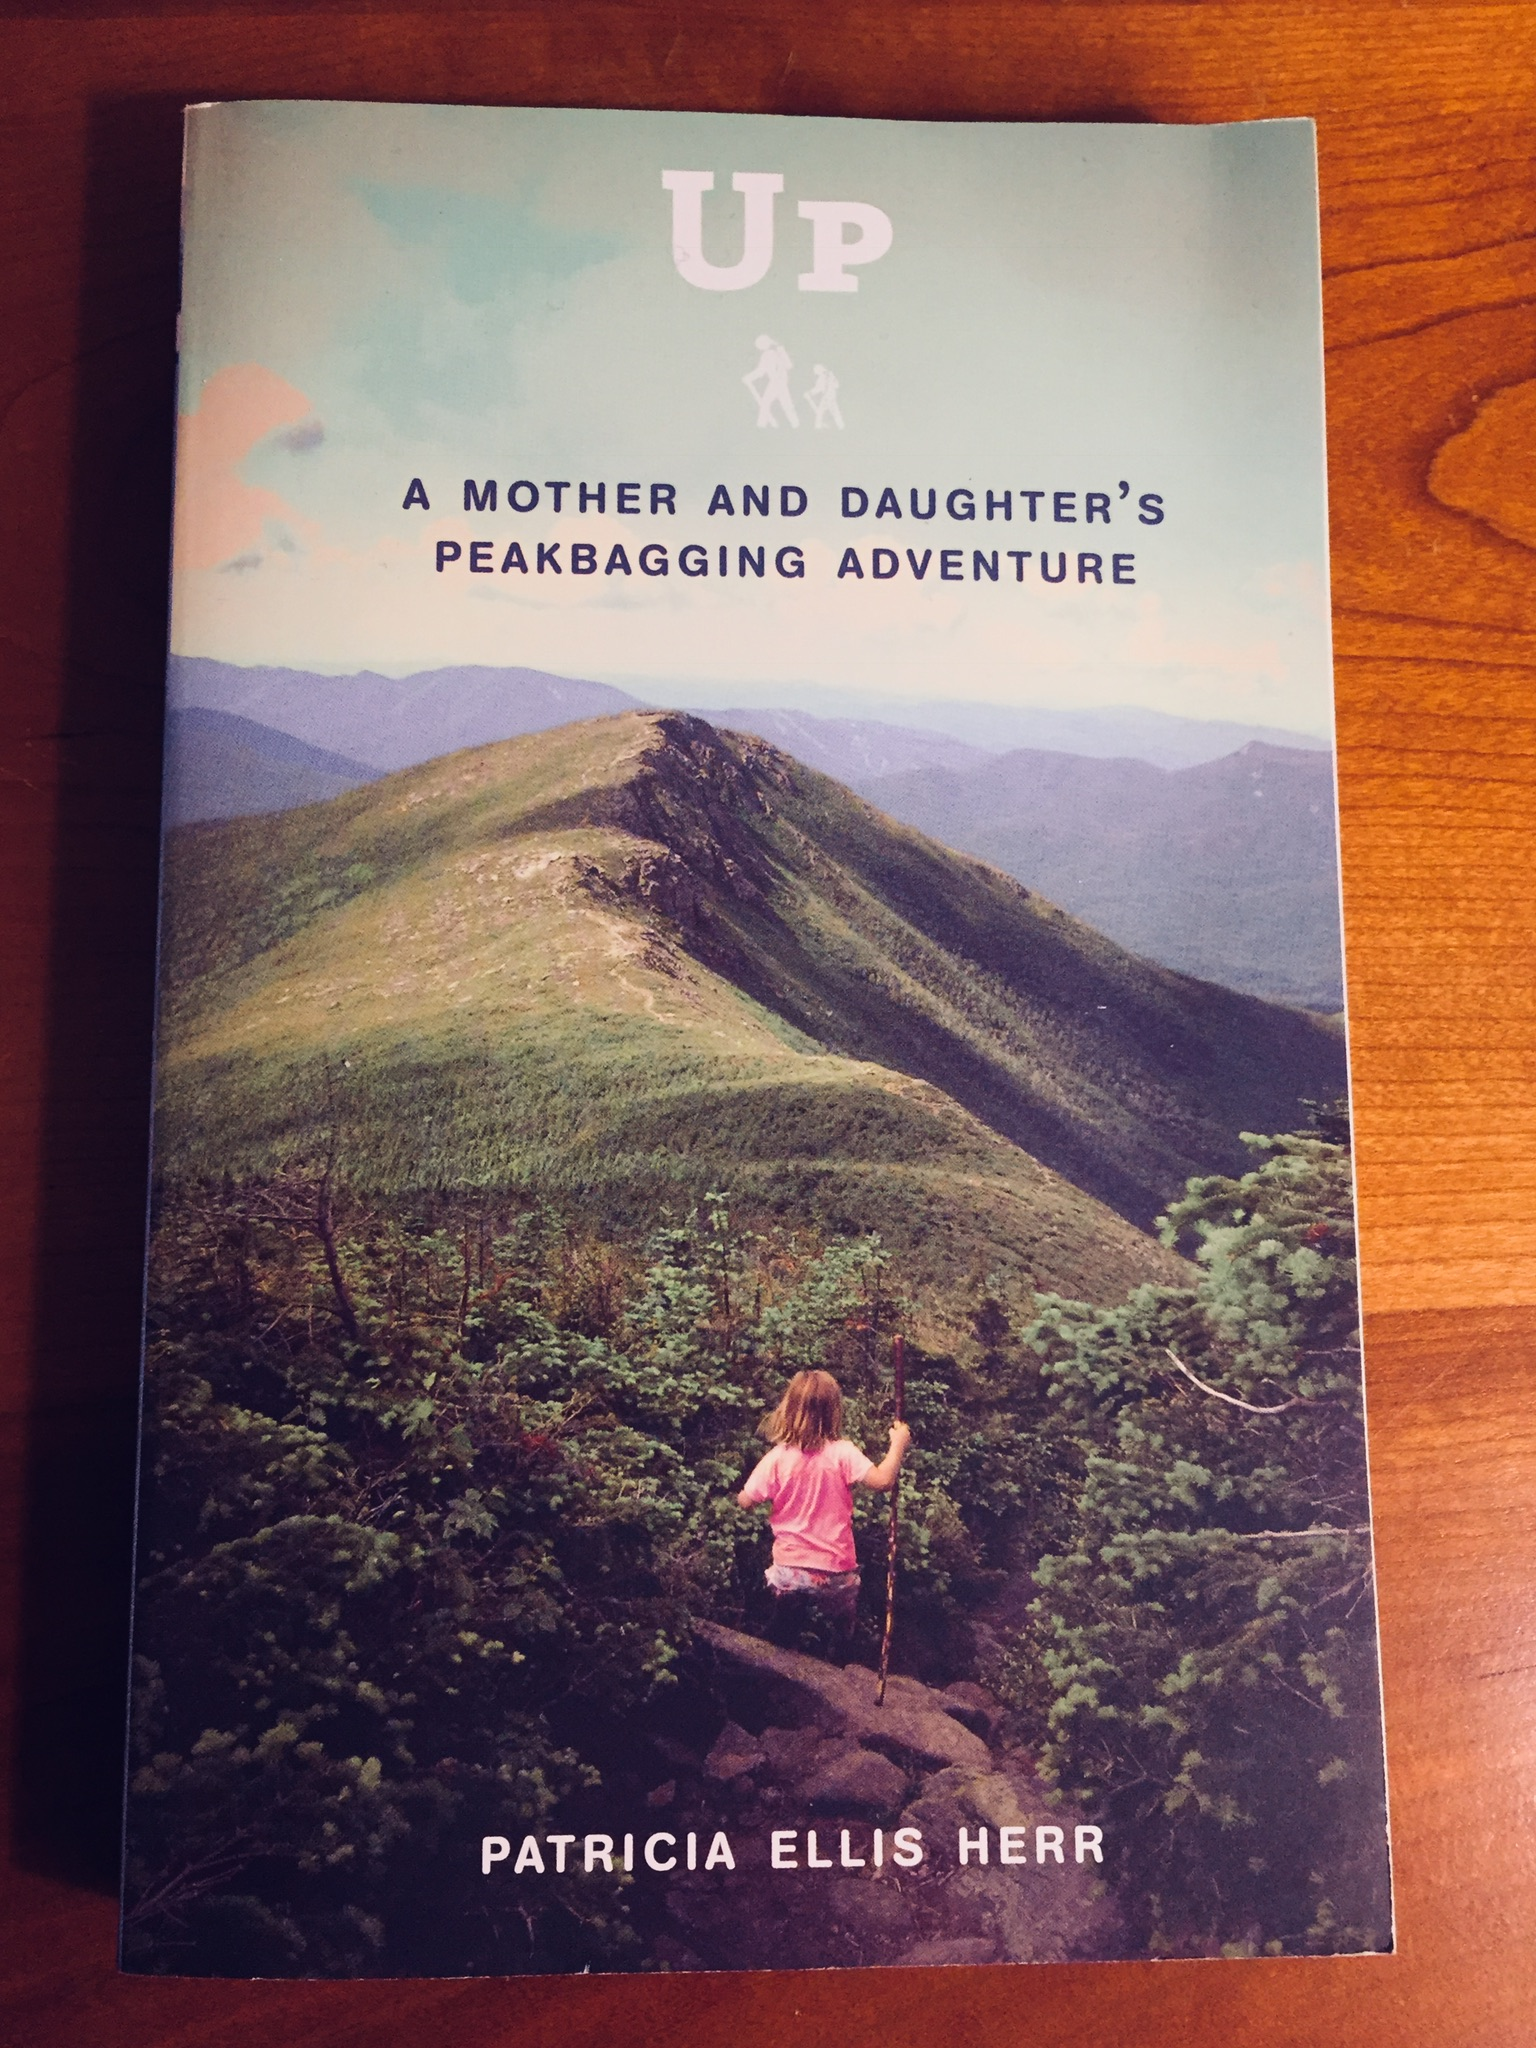 Up: A Mother and Daughter's Peakbagging Adventure by Patricia Ellis Herr